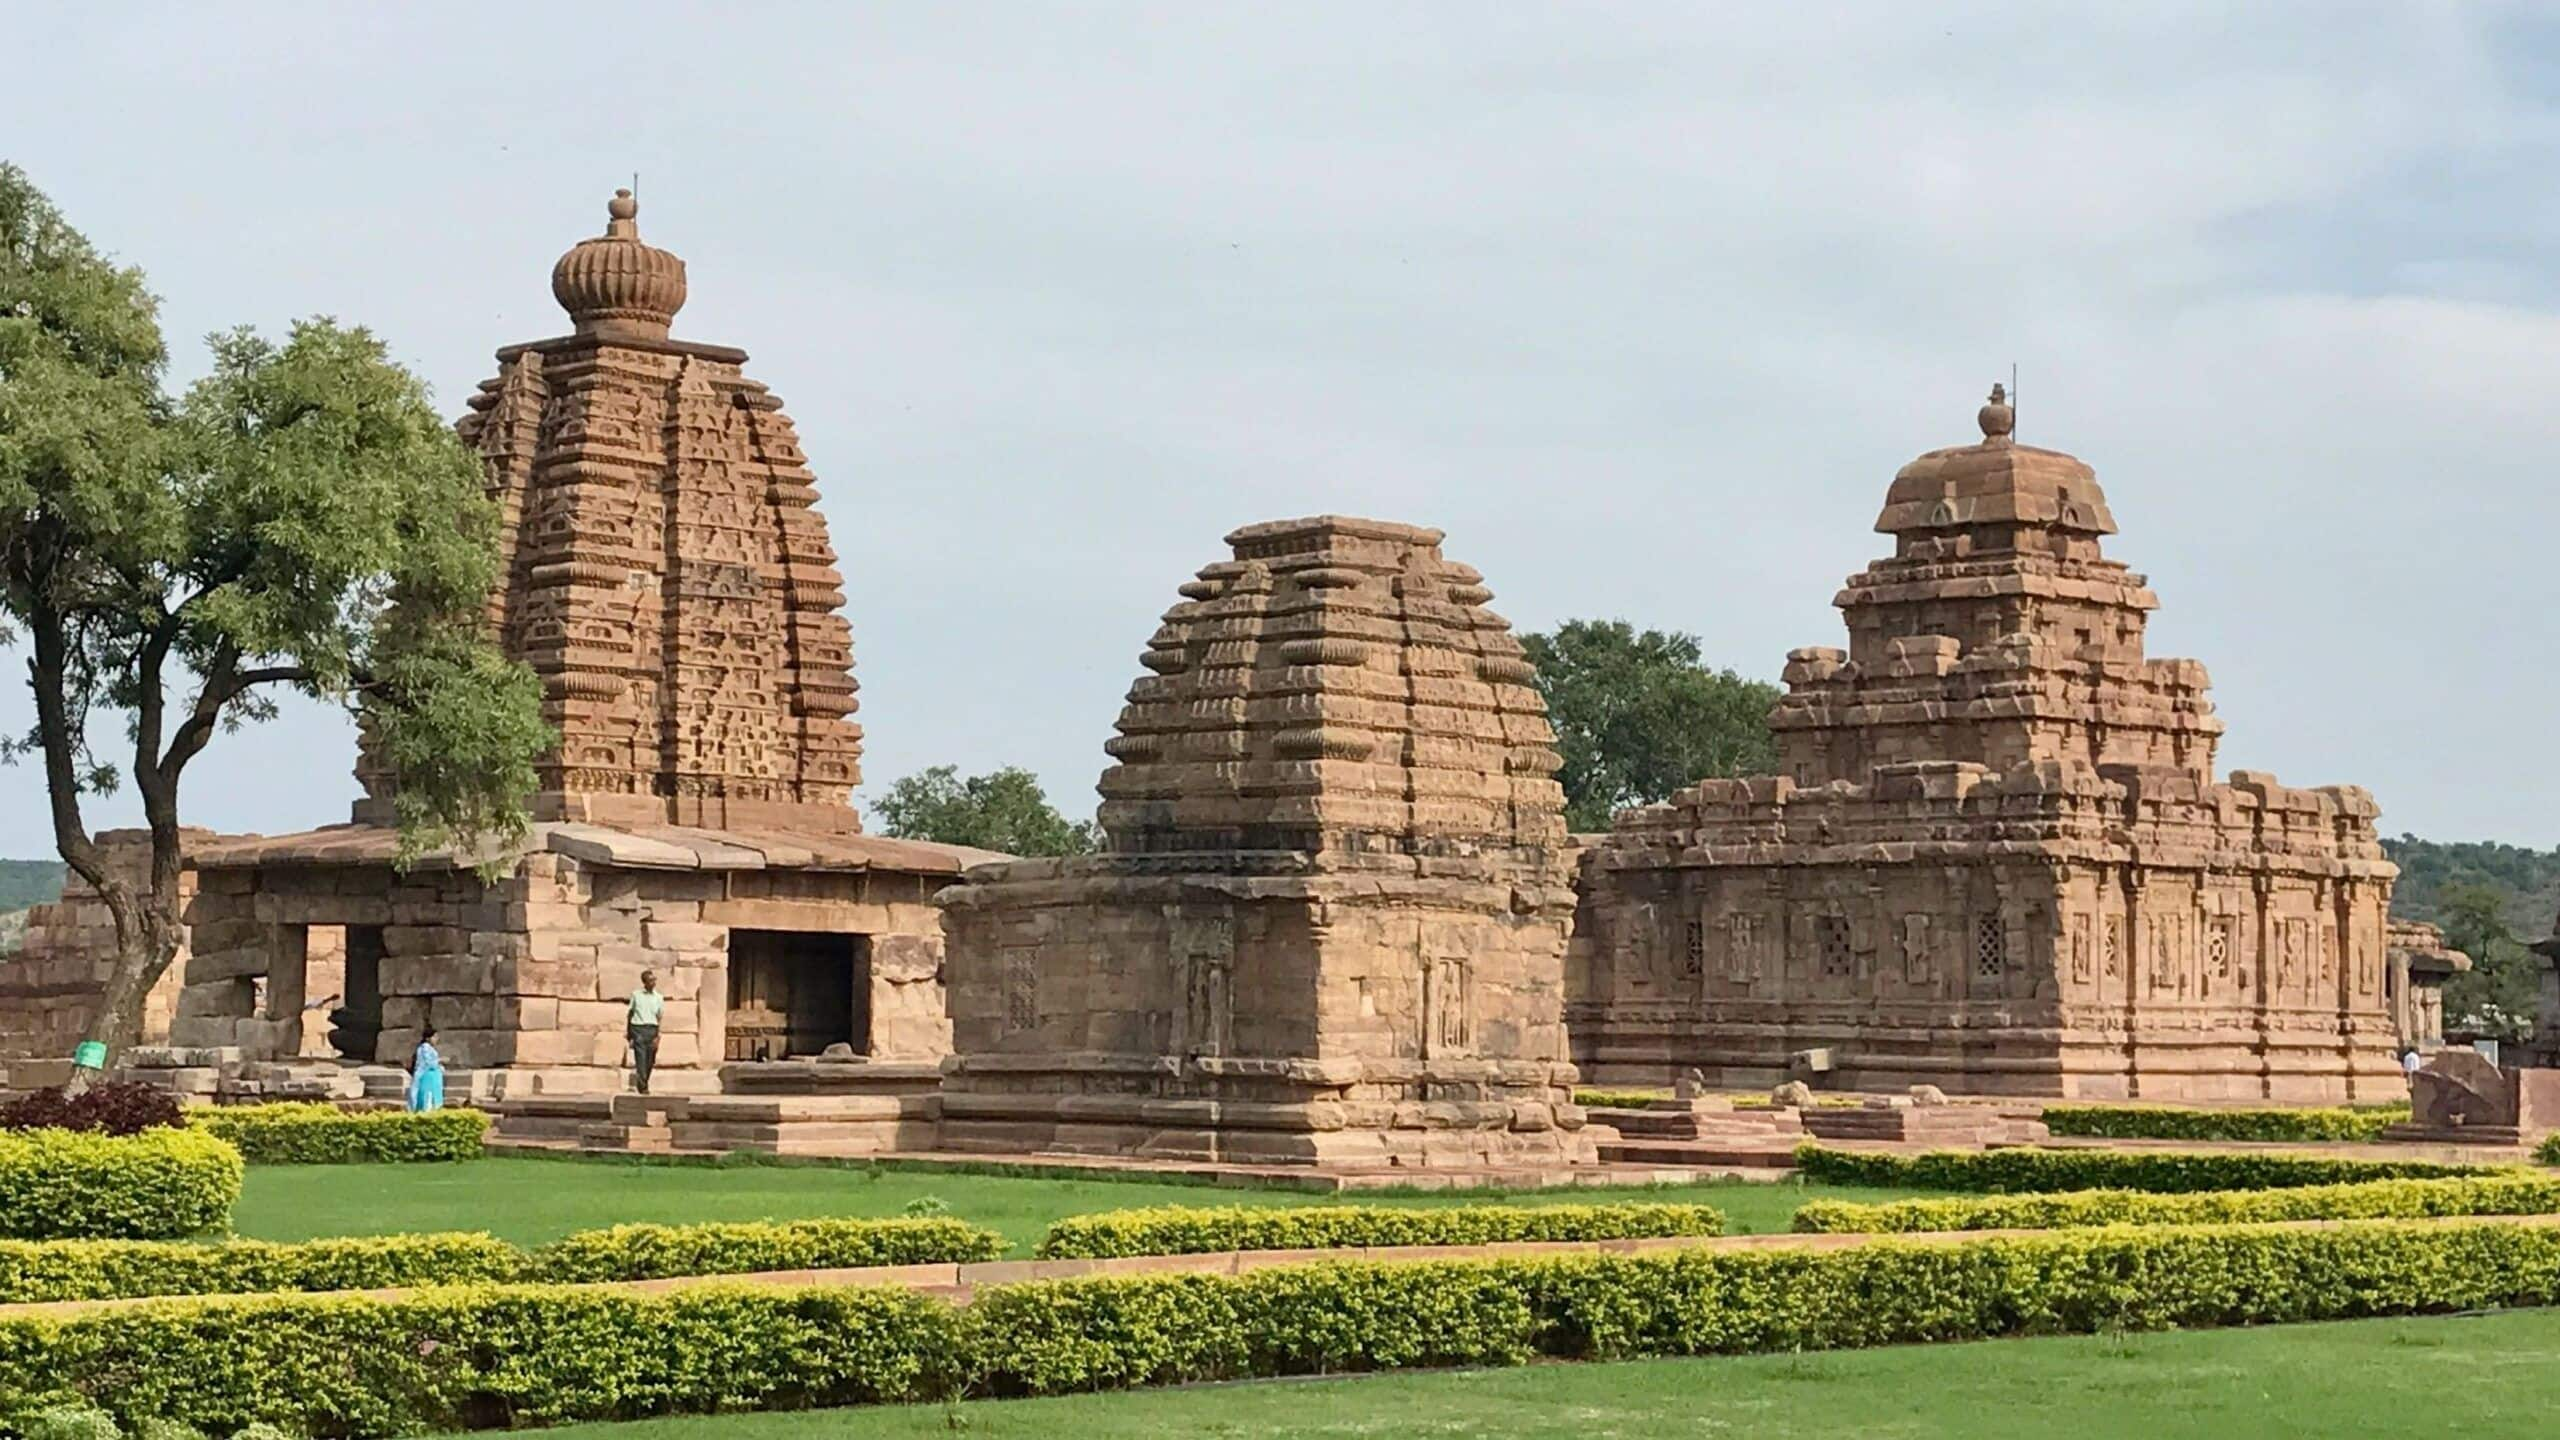 Lost Cities of India: 6 Indian Cities Abandoned Due to Wars, Natural Calamities